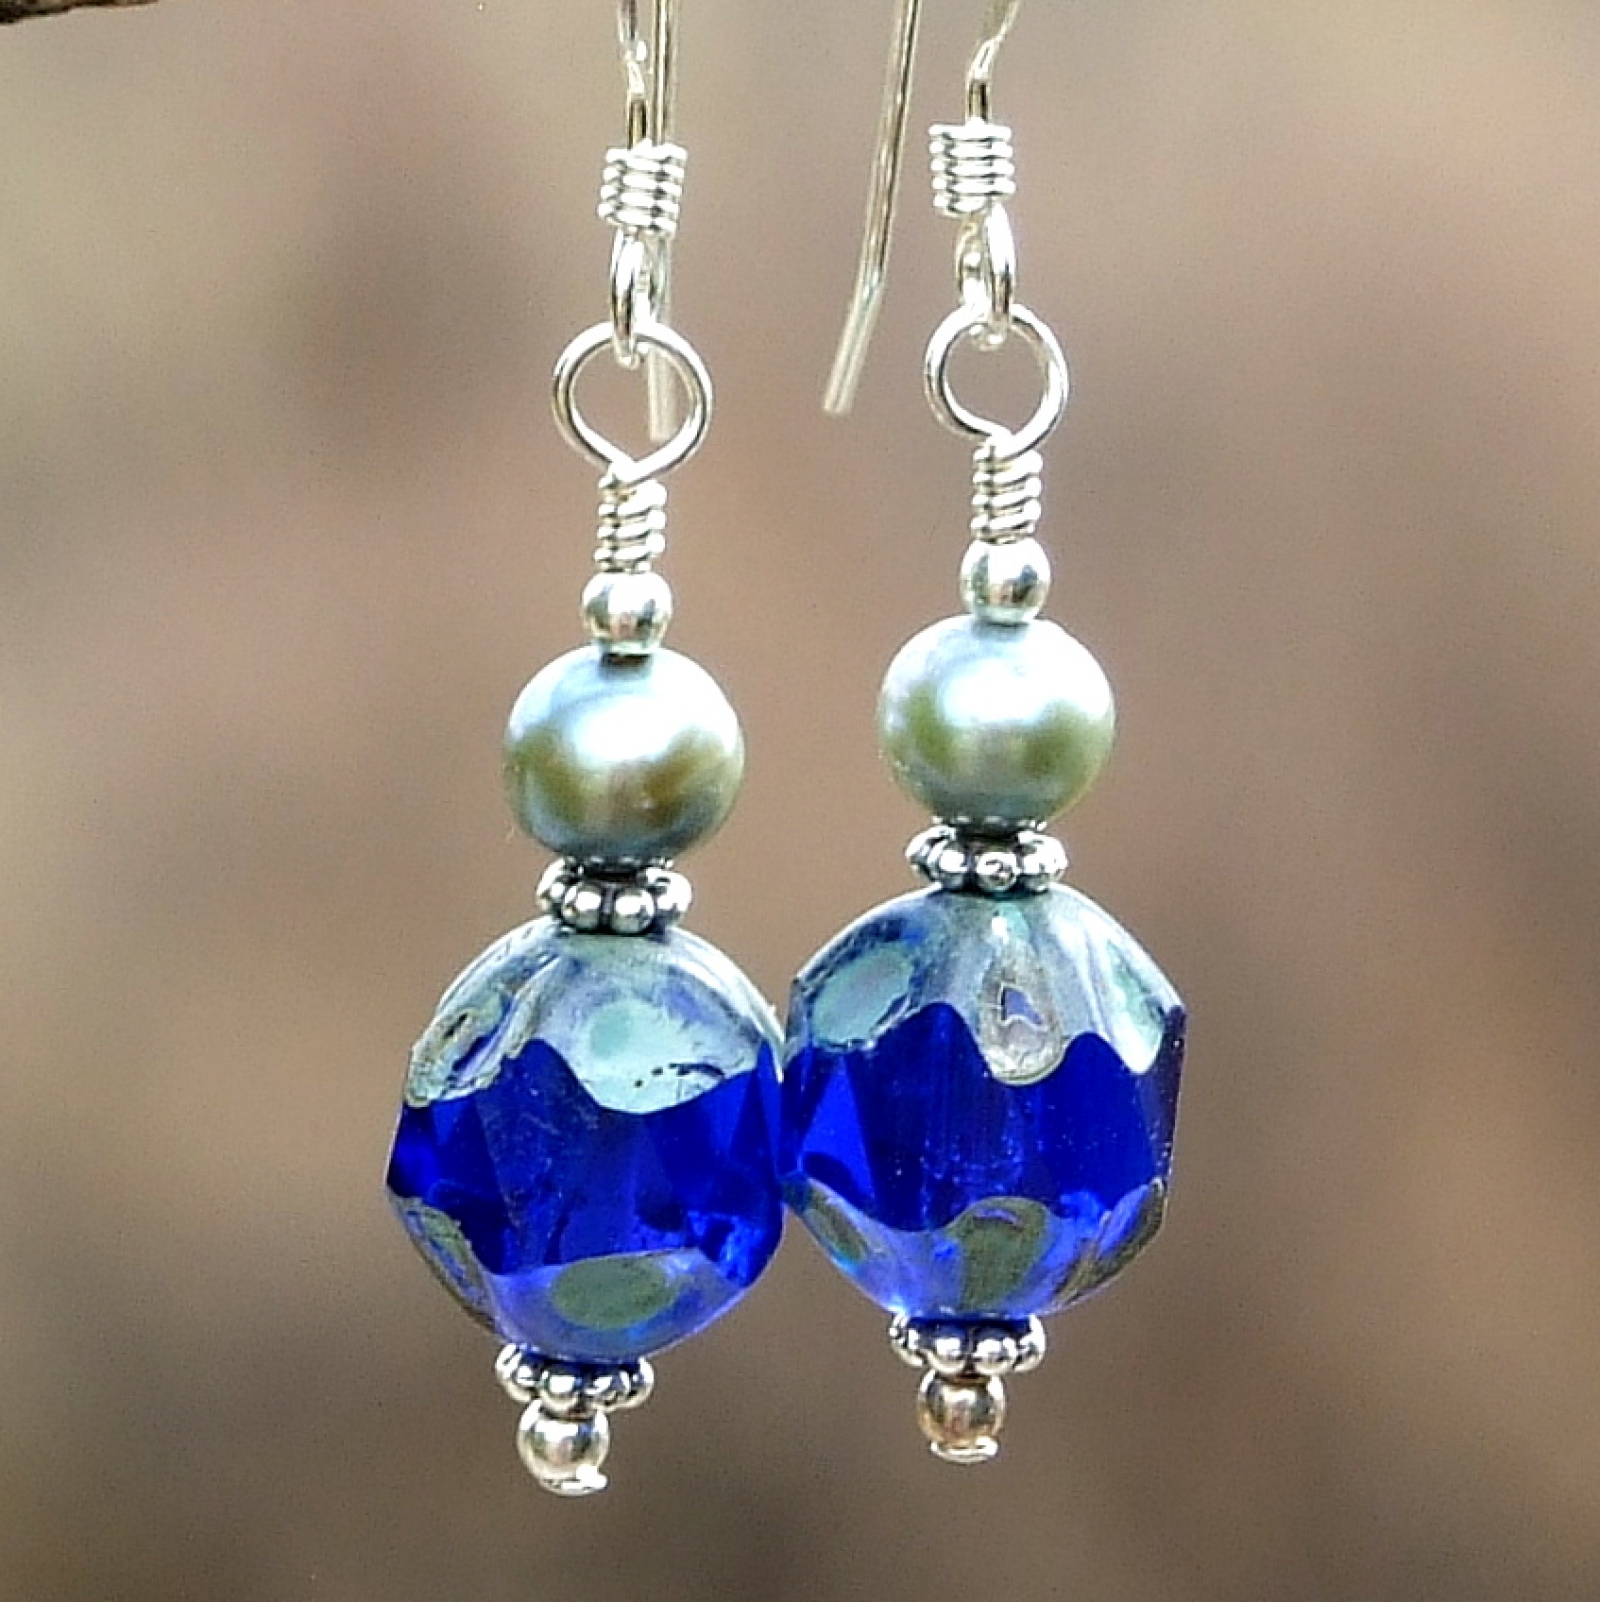 nanter amc bleunuit online glass marilyn anne next earrings previous blue product s marie chagnon earring nightblue